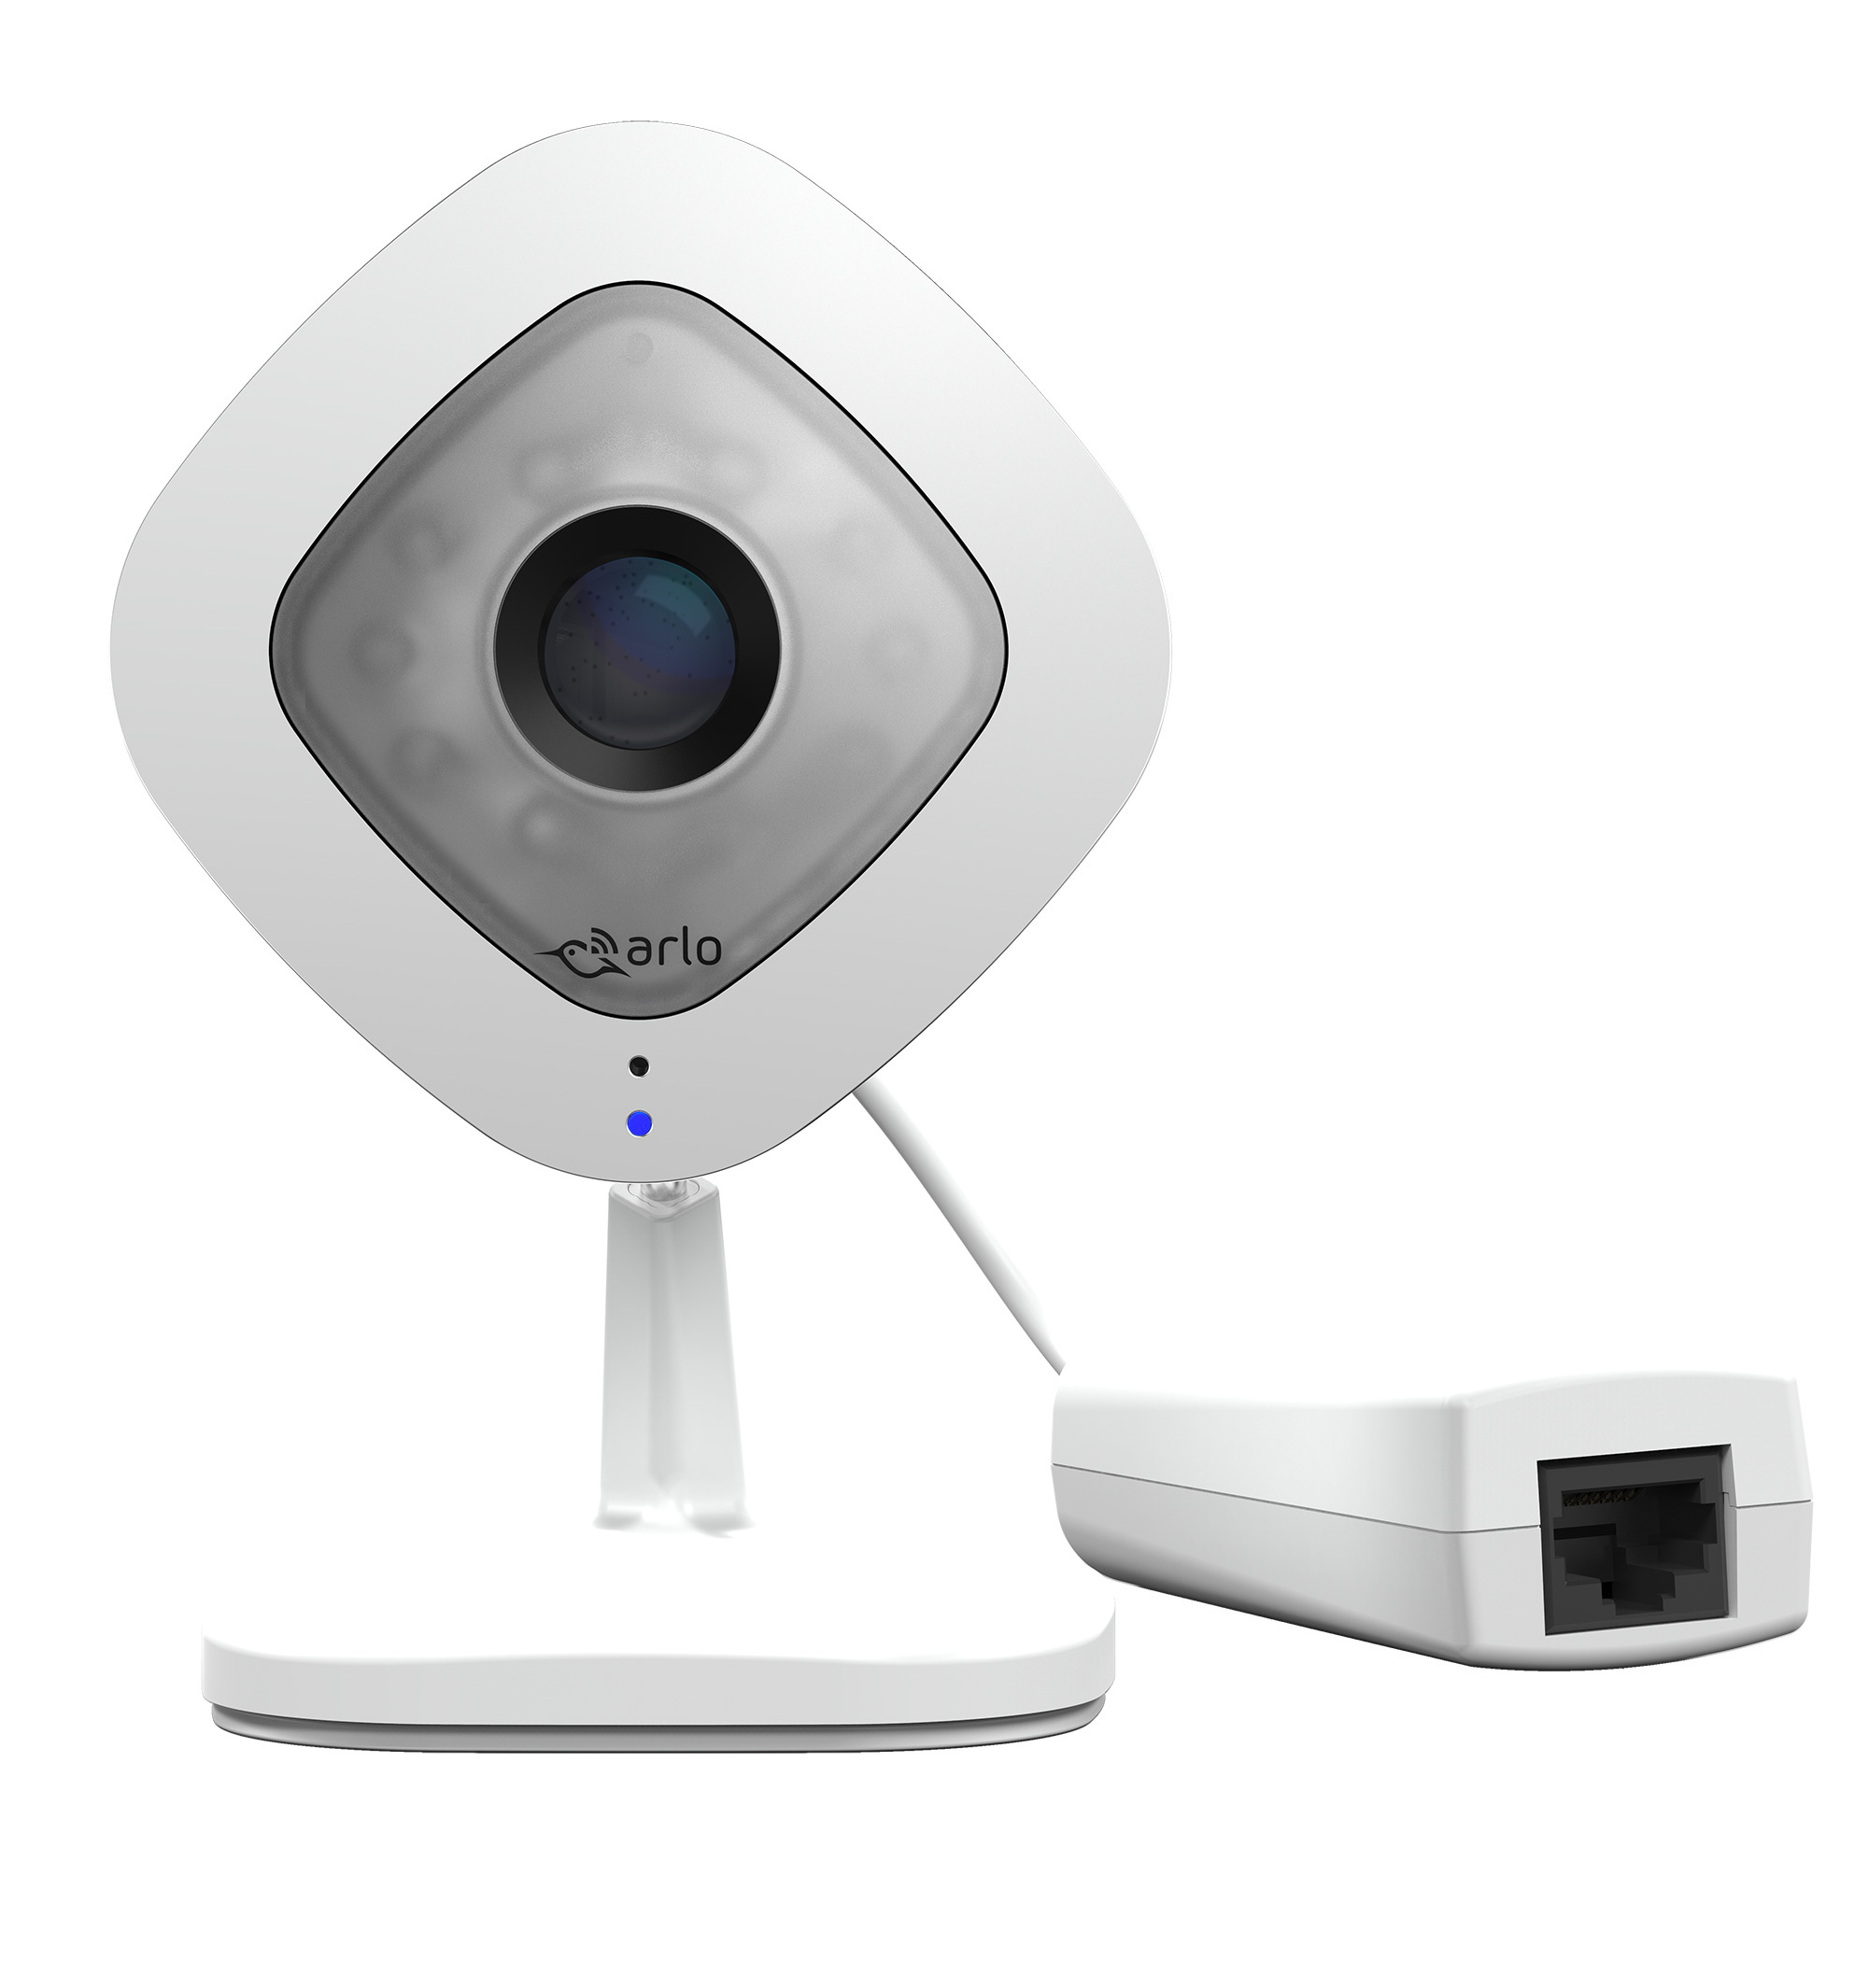 New Arlo Q Plus Camera Addresses Security Needs of Small Businesses ...